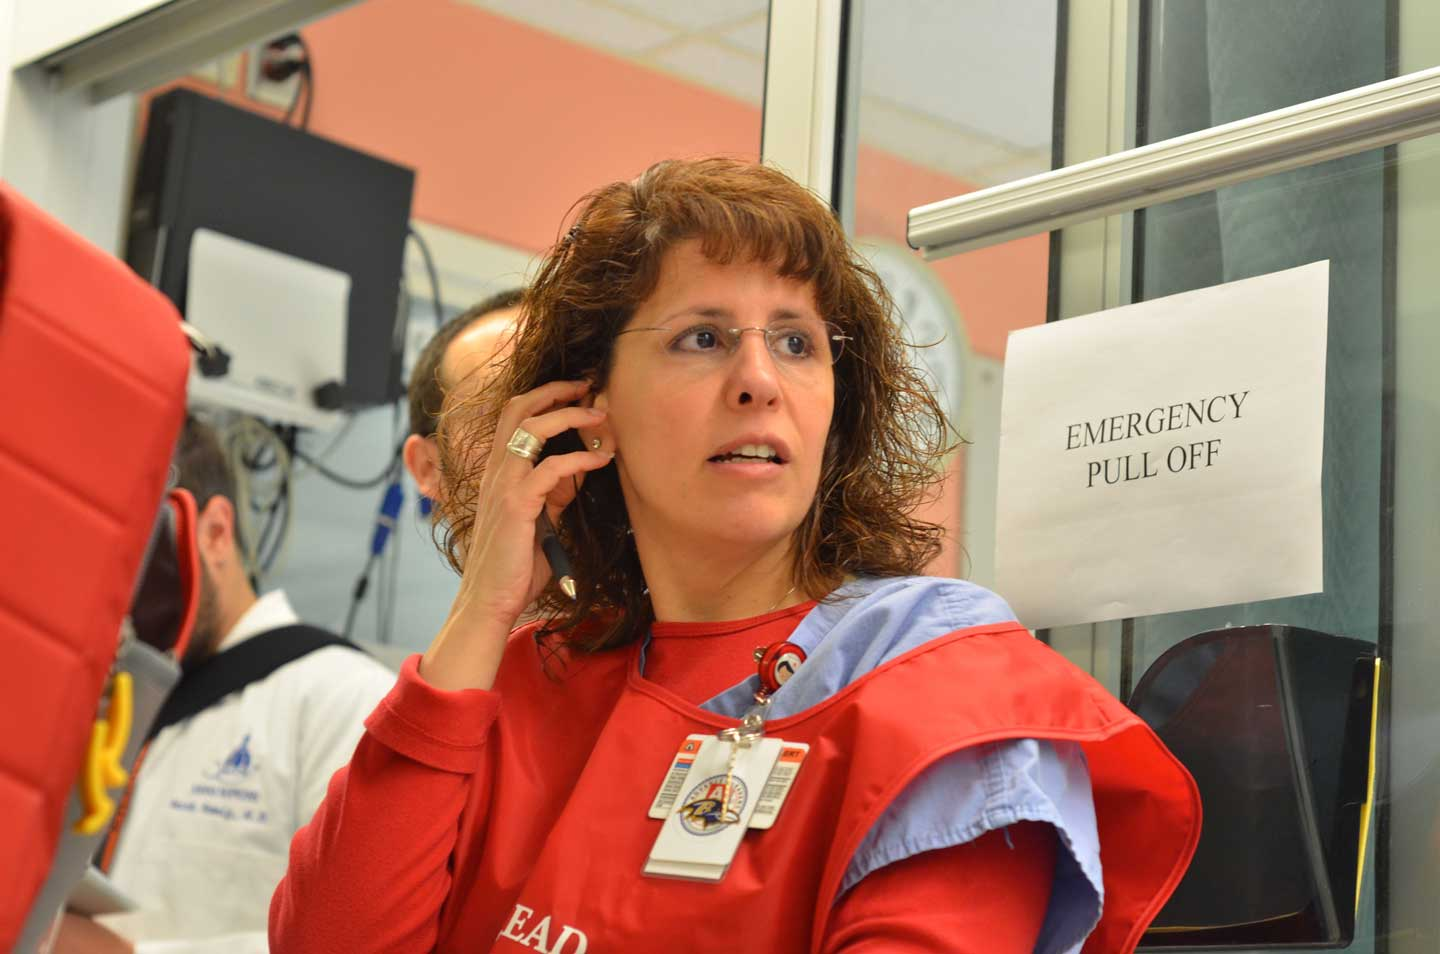 JoAnn Ioannou, the hospital's assistant director of nursing, awaits the go-ahead to transport a patient.